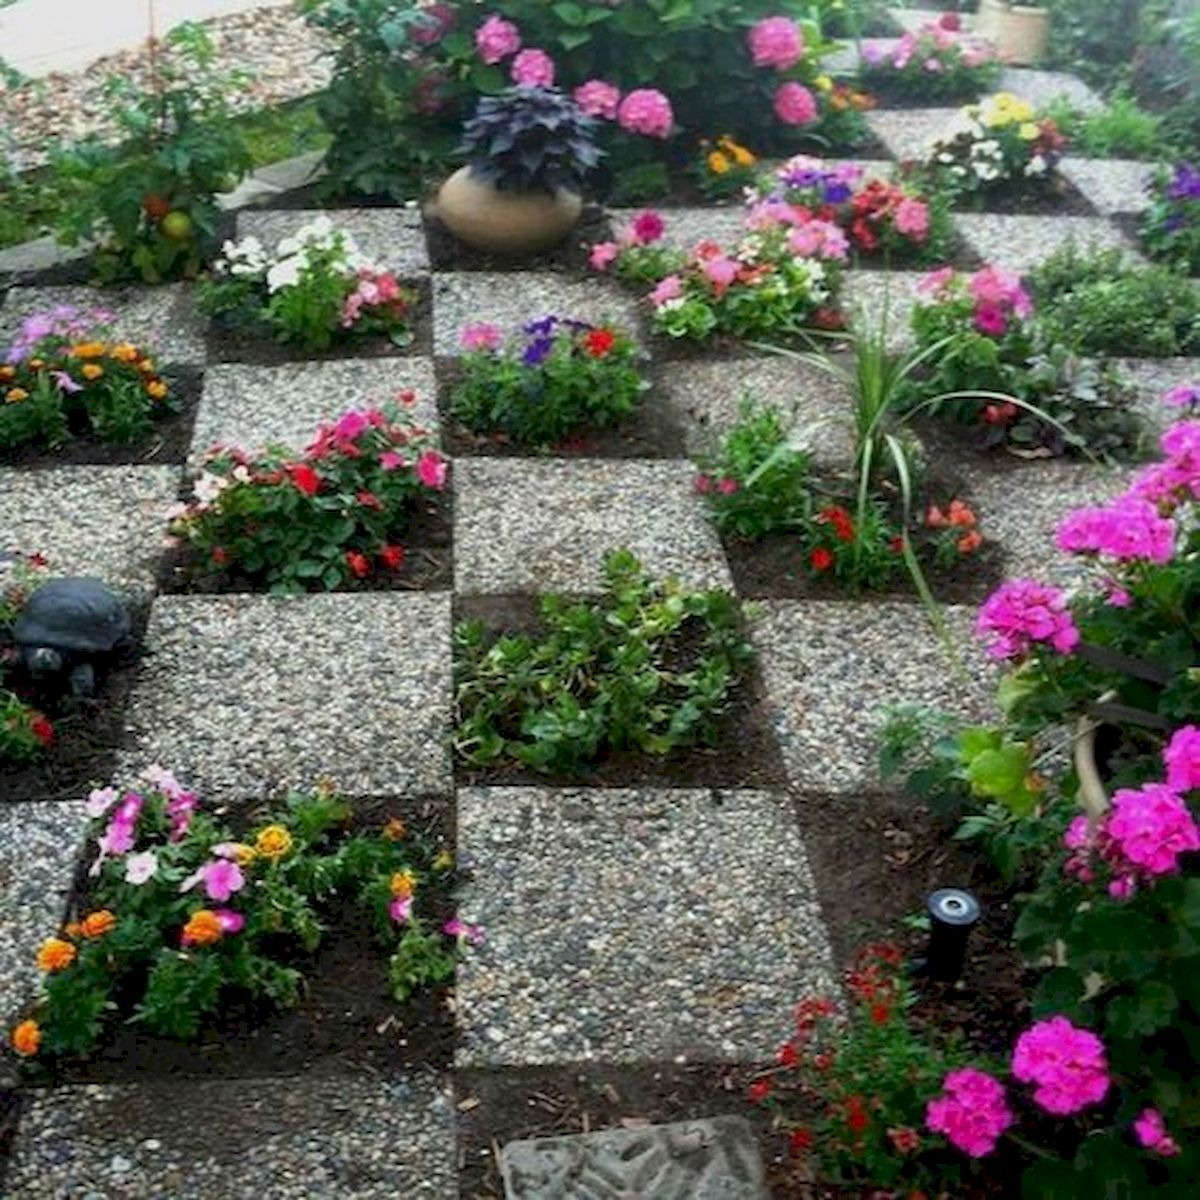 30 Amazing DIY for Garden Projects Ideas You Will Want to Save (8)